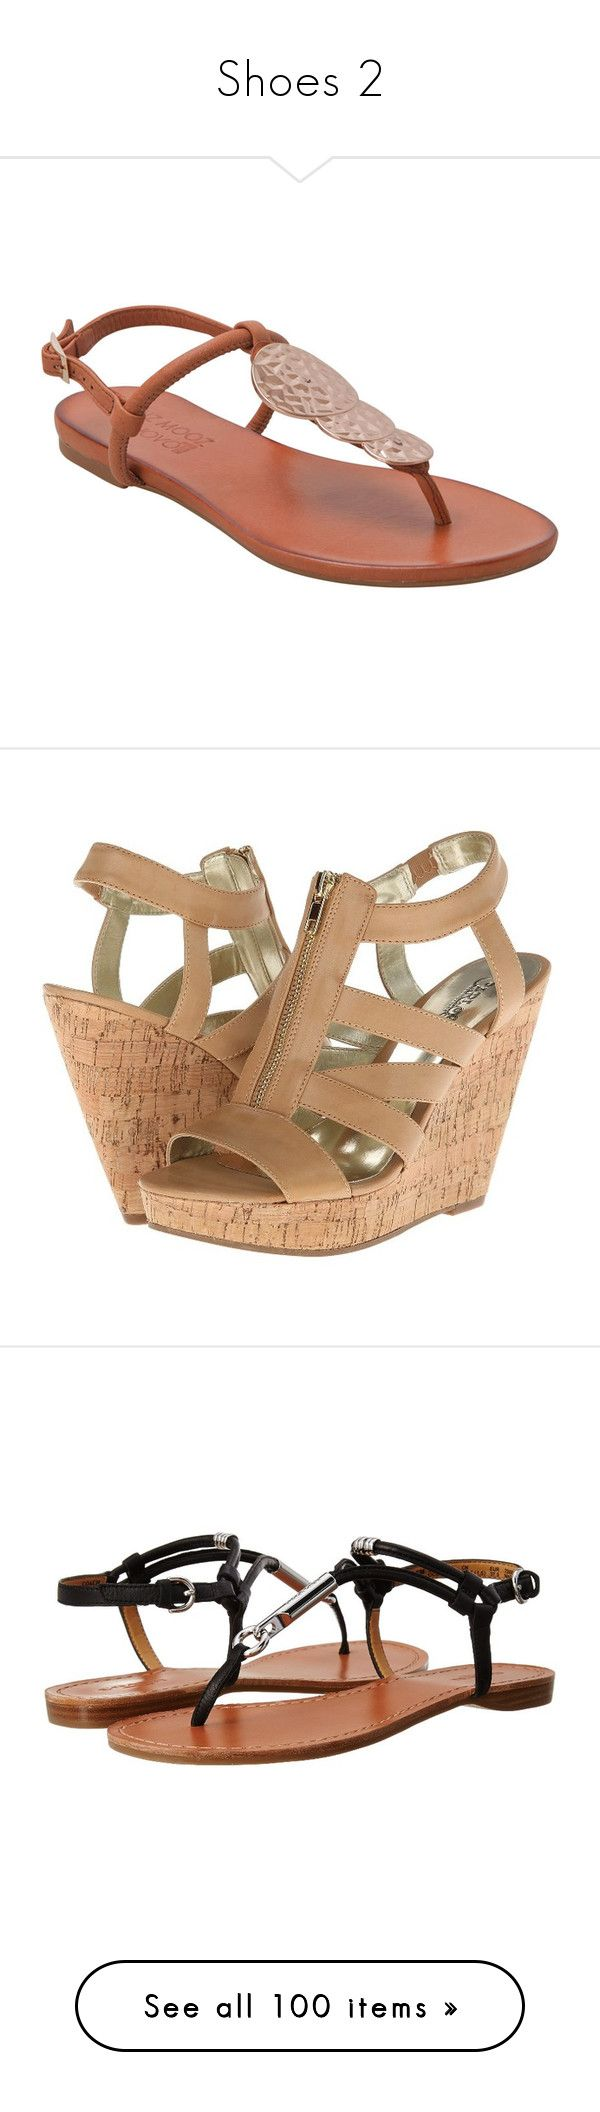 """""""Shoes 2"""" by xirishxprincessx ❤ liked on Polyvore featuring shoes, sandals, 22. flats & sandals., flats, zapatos, brown, brown leather sandals, flats sandals, brown sandals and bohemian sandals"""